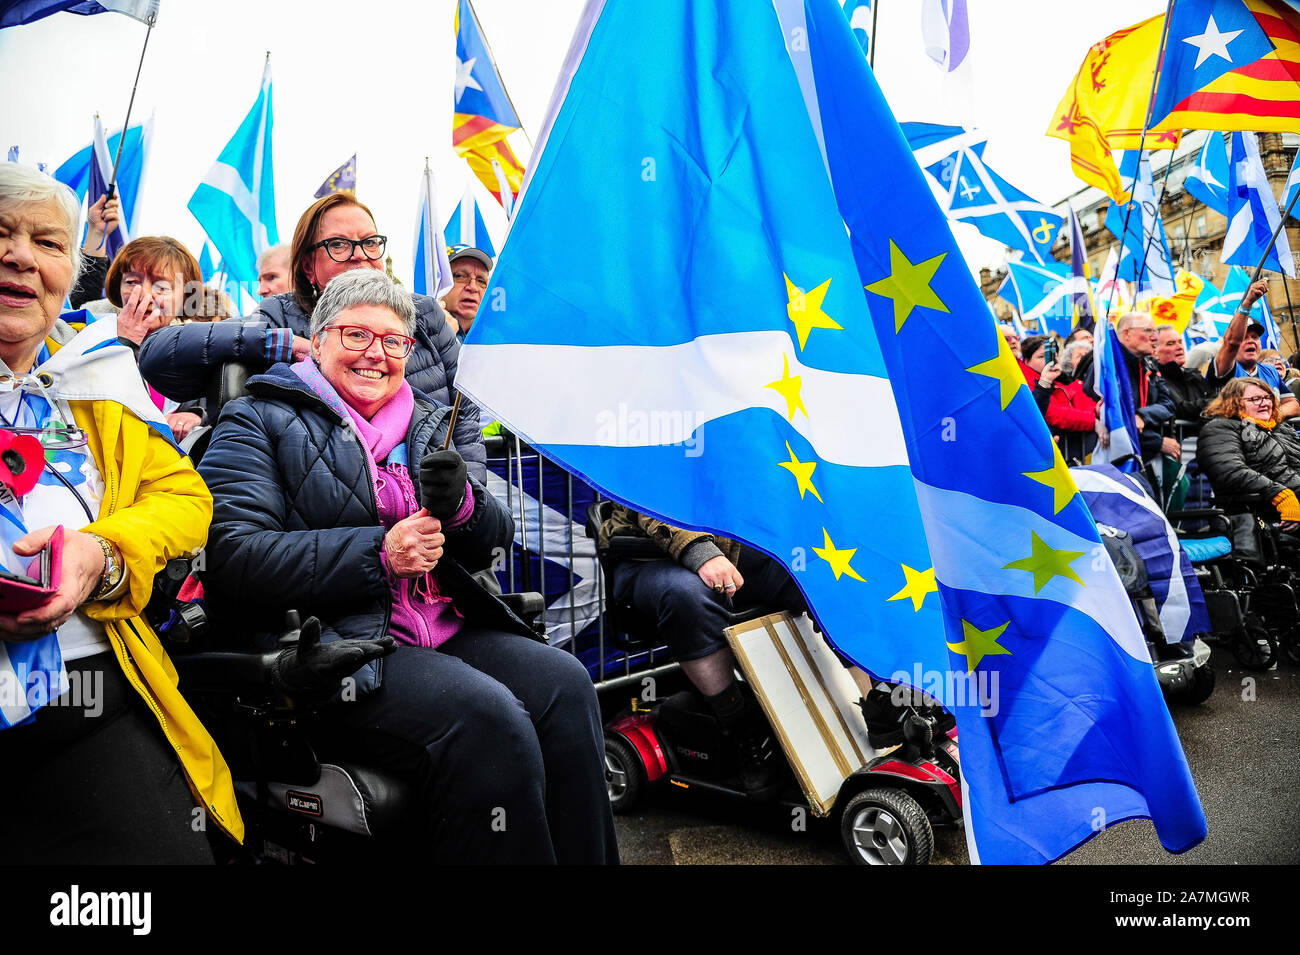 Glasgow, UK. 02nd Nov, 2019. An independence supporter holds her Scotland in Europe flag during the IndyRef2020 rally hosted by The National Newspaper. Credit: SOPA Images Limited/Alamy Live News Stock Photo